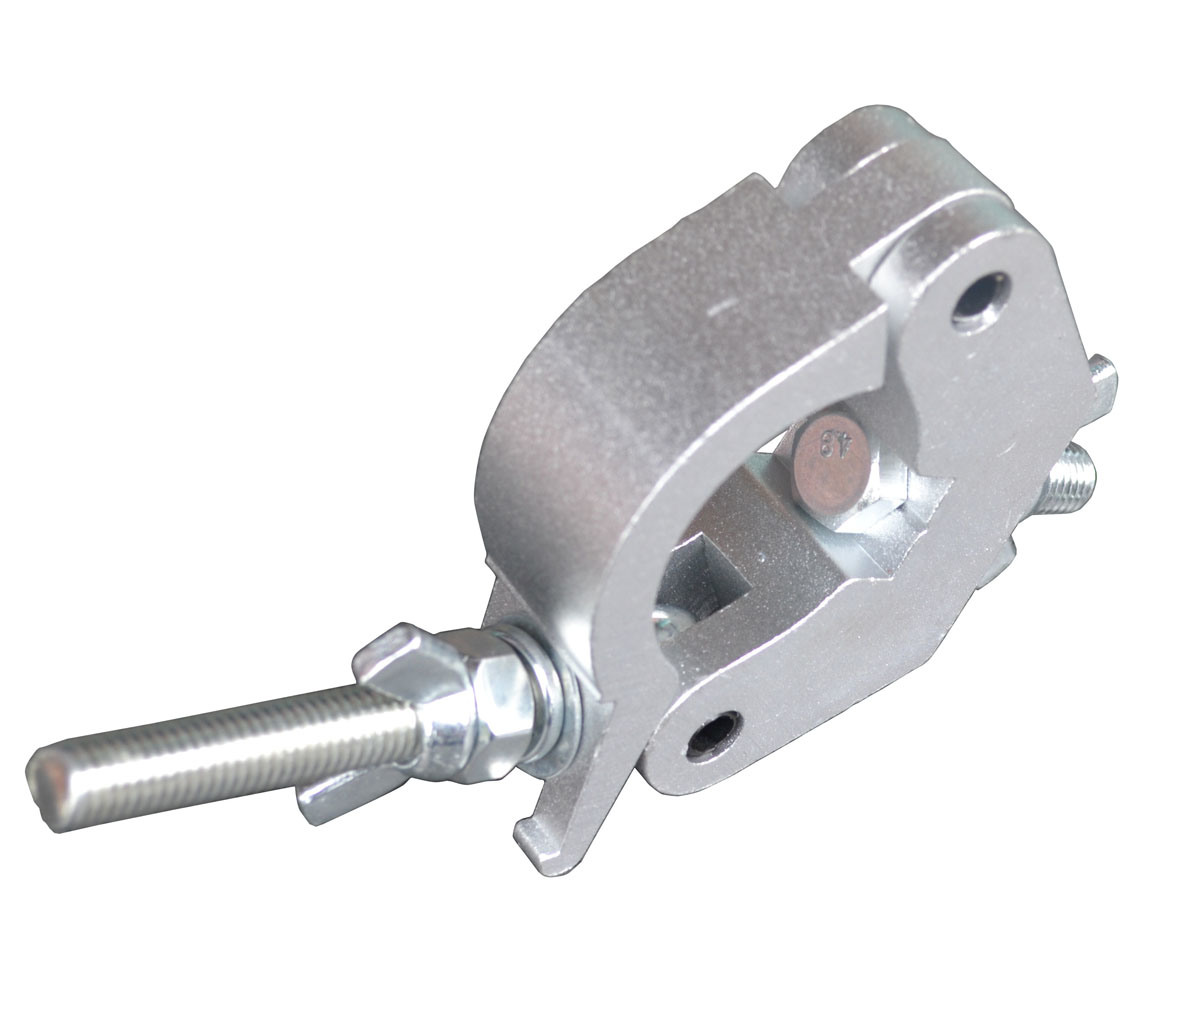 Aluminum G Clamp for Stage Use, Hook, Coupler - Pcl-15abig